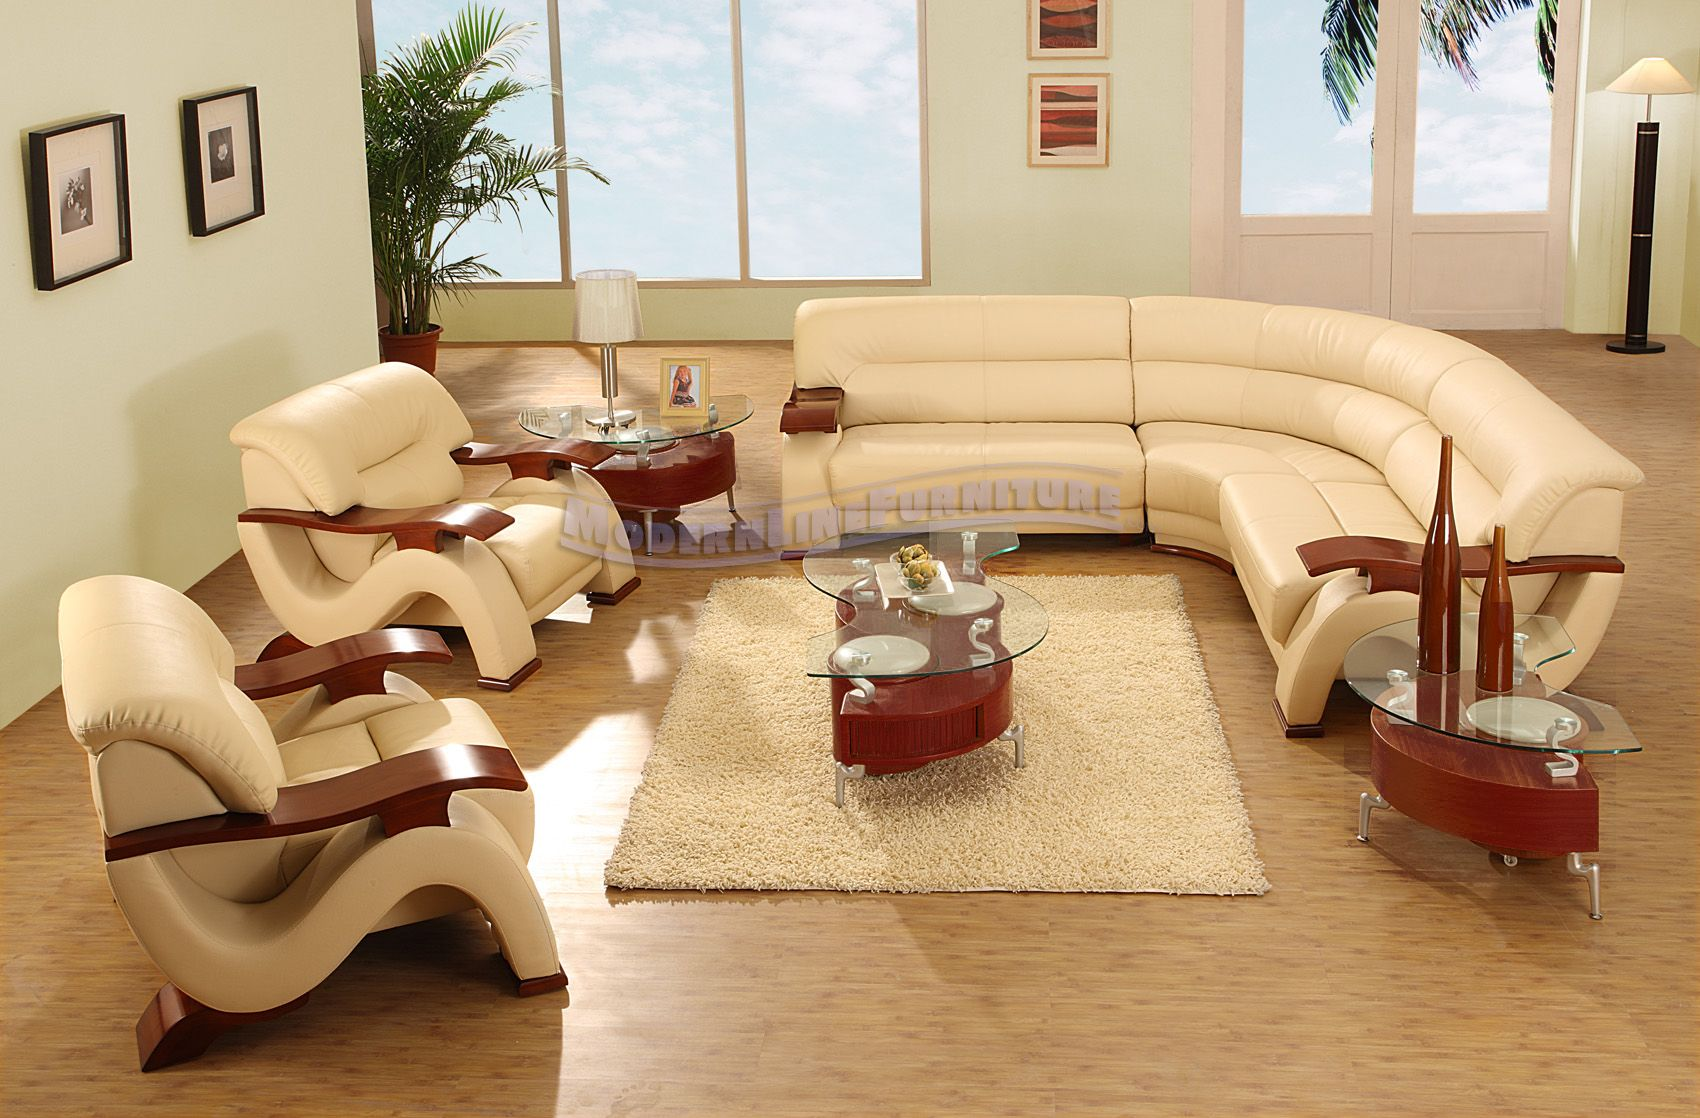 Modern Beige Leather Sectional Sofa with Two Chairs Coffee Table